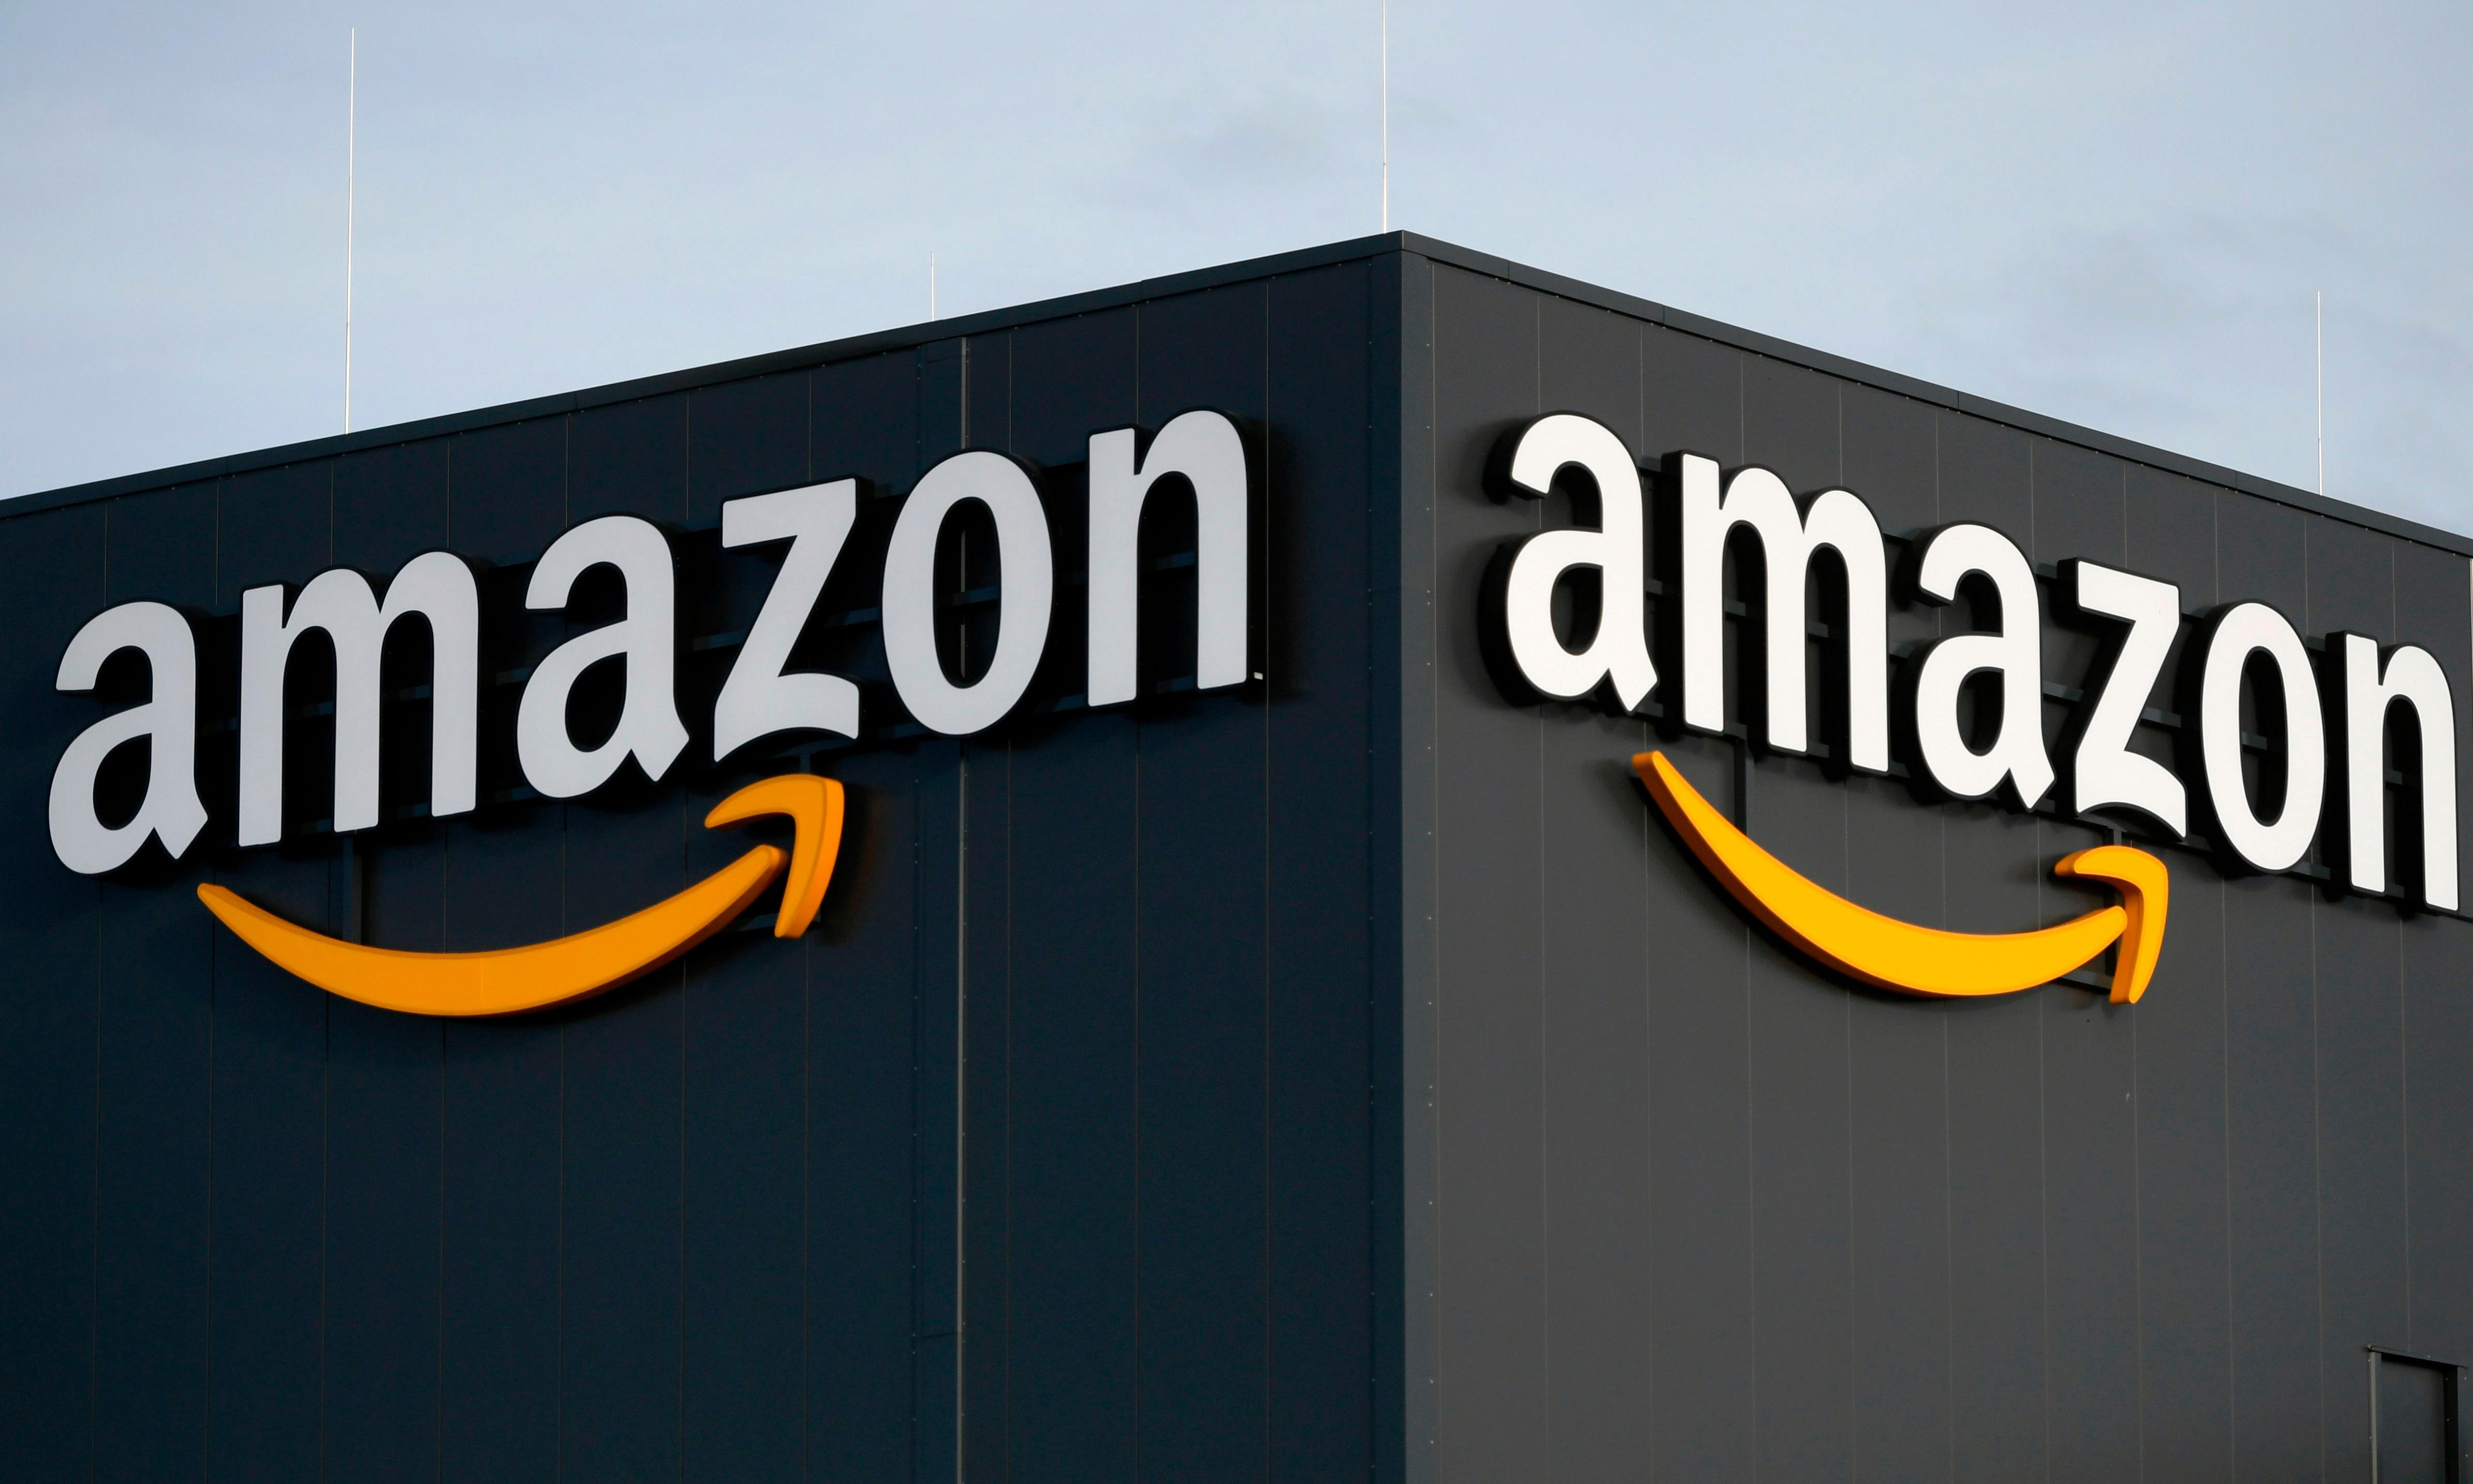 Concerns over safety at Amazon warehouses as accident reports rise